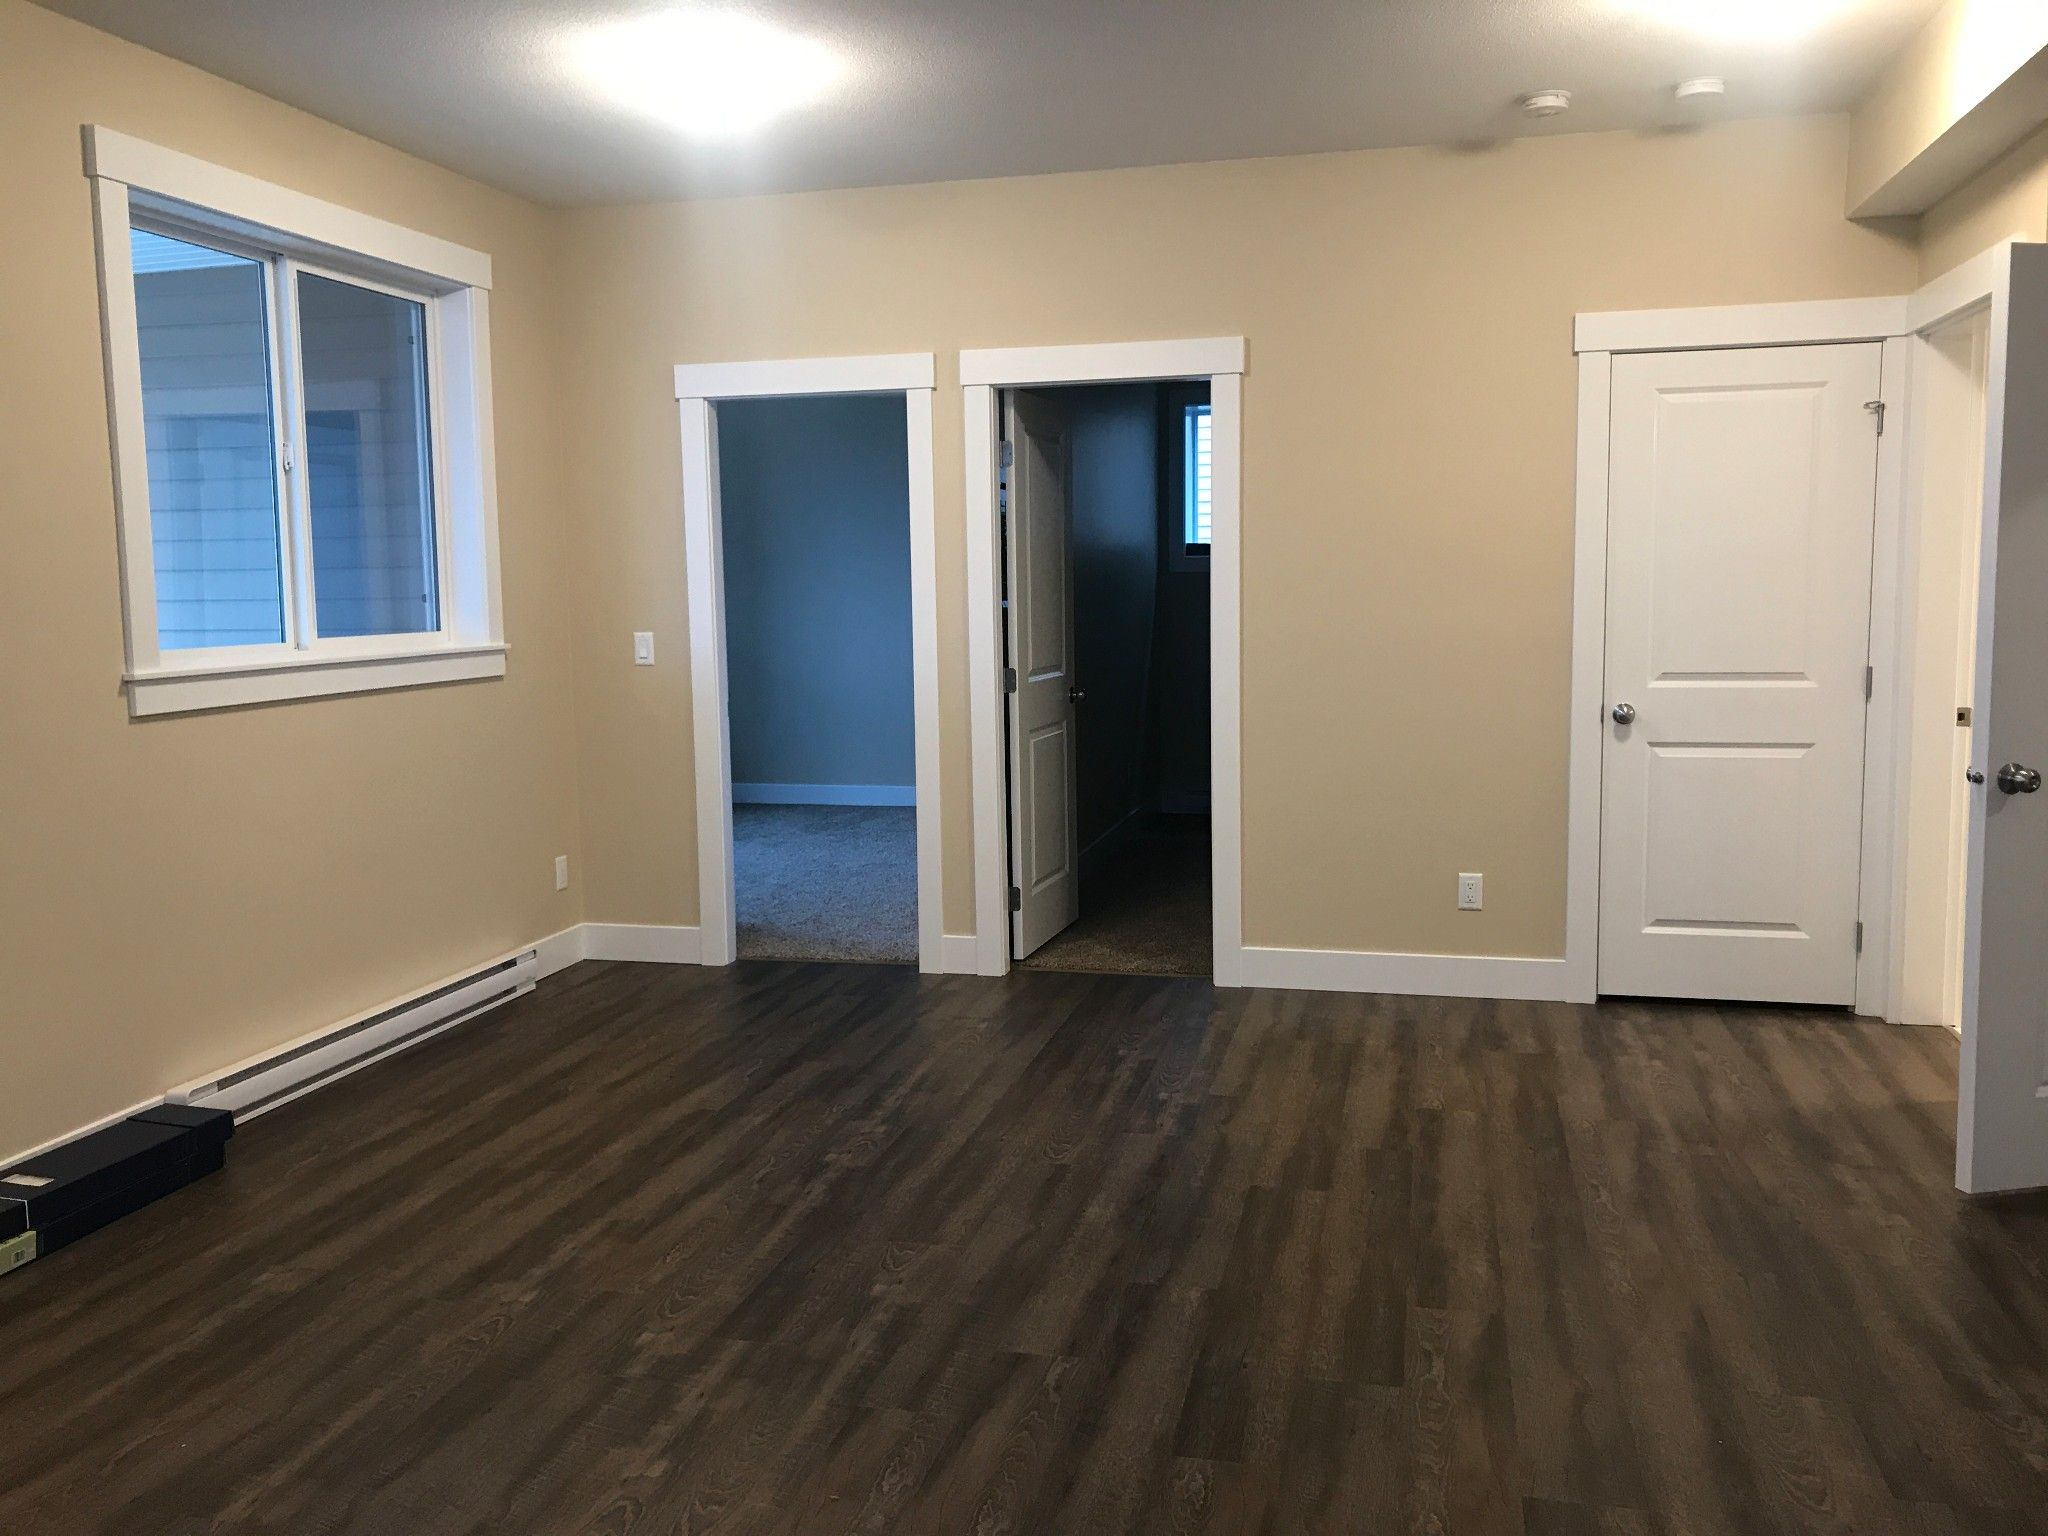 Photo 2: Photos: BSMT 51045 Zander Place in Chilliwack: Condo for rent